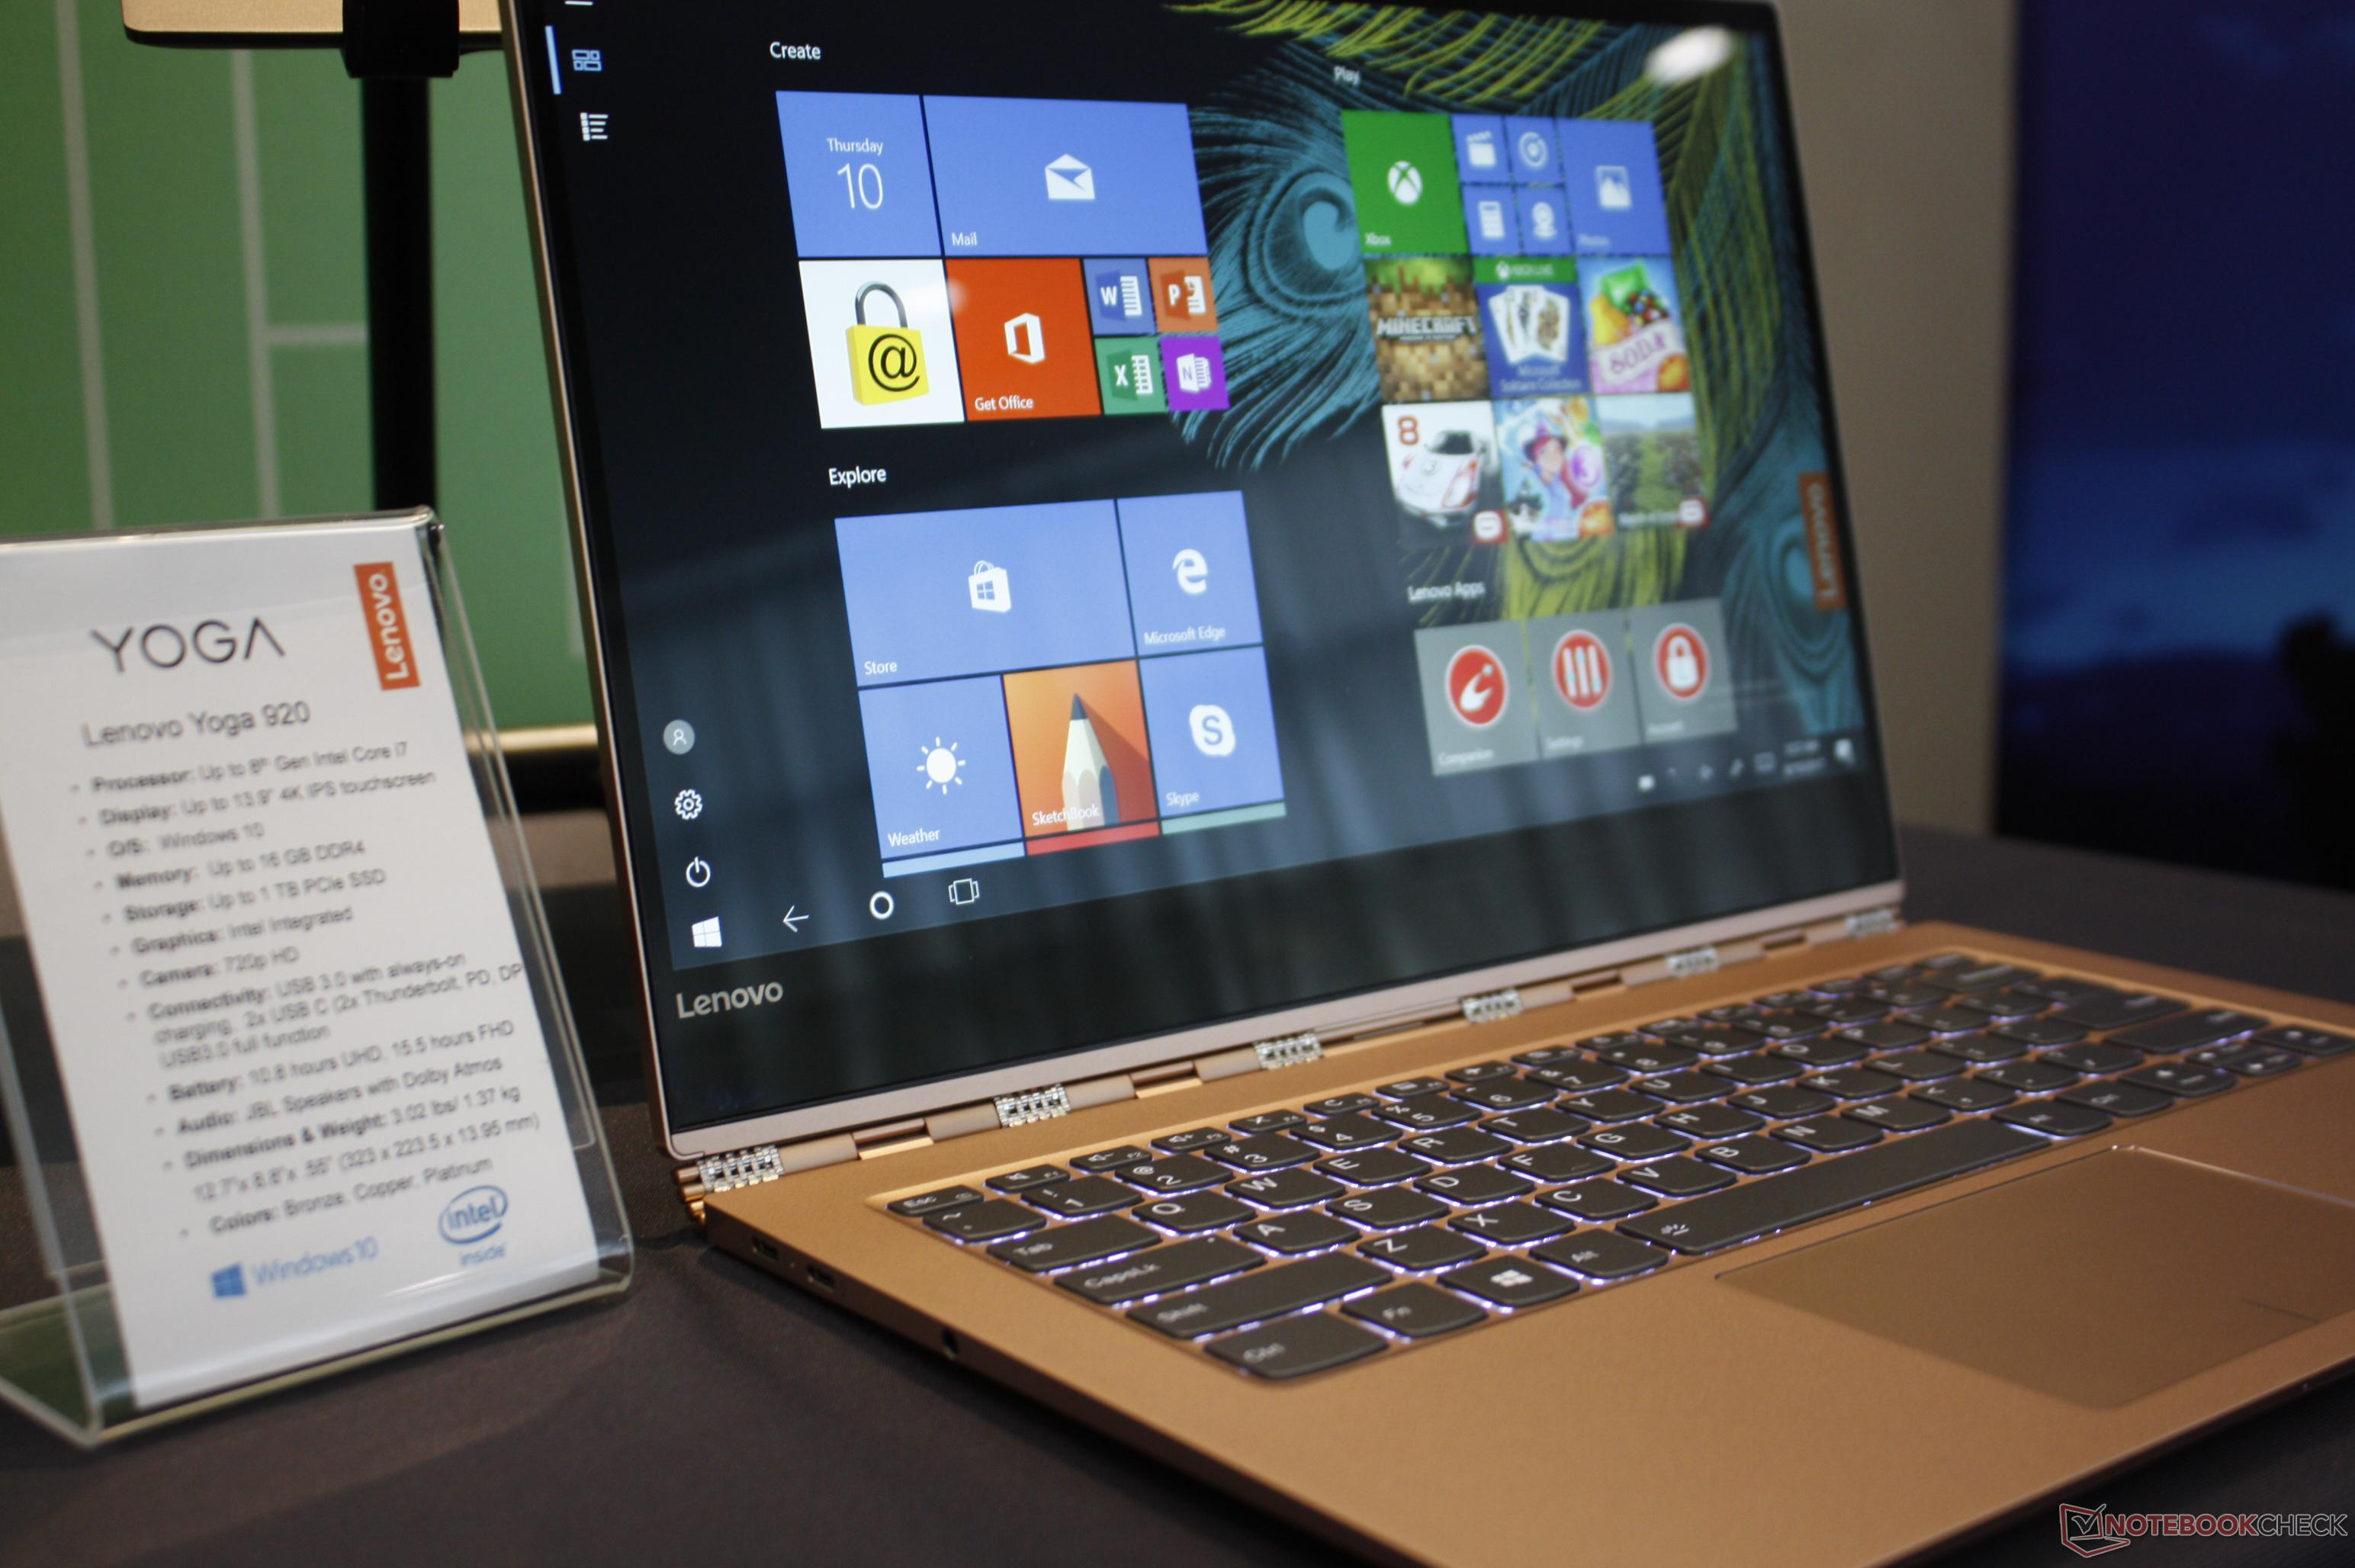 Lenovo launches redesigned Yoga 920 with Kaby Lake-R - NotebookCheck.net News